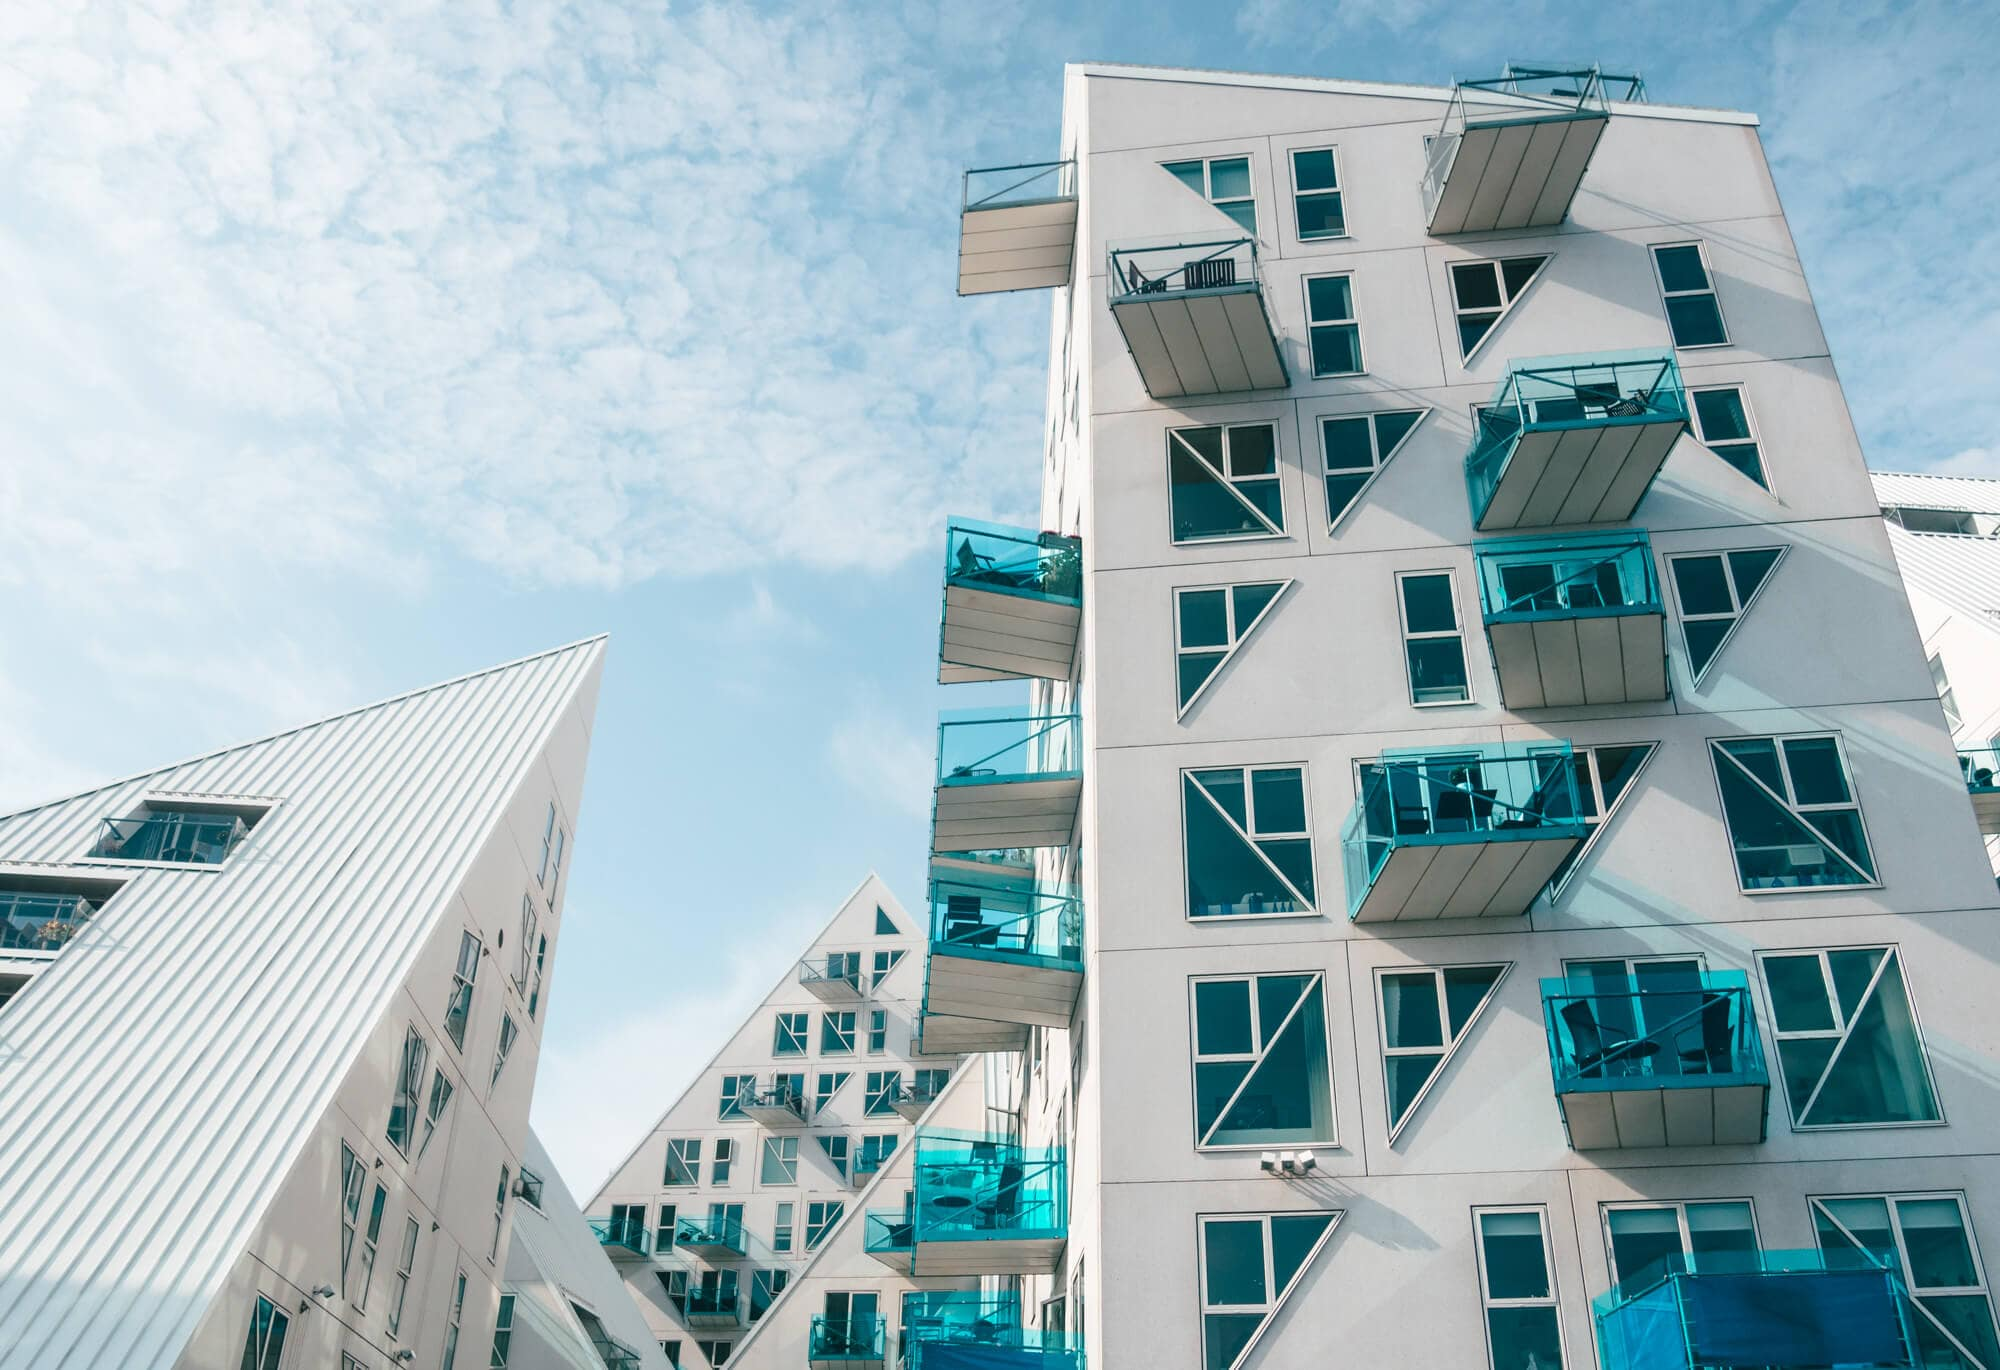 Two days in Aarhus - Denmark's happiest city. The newest neighborhood in Aarhus, Ø and the famous Iceberg building